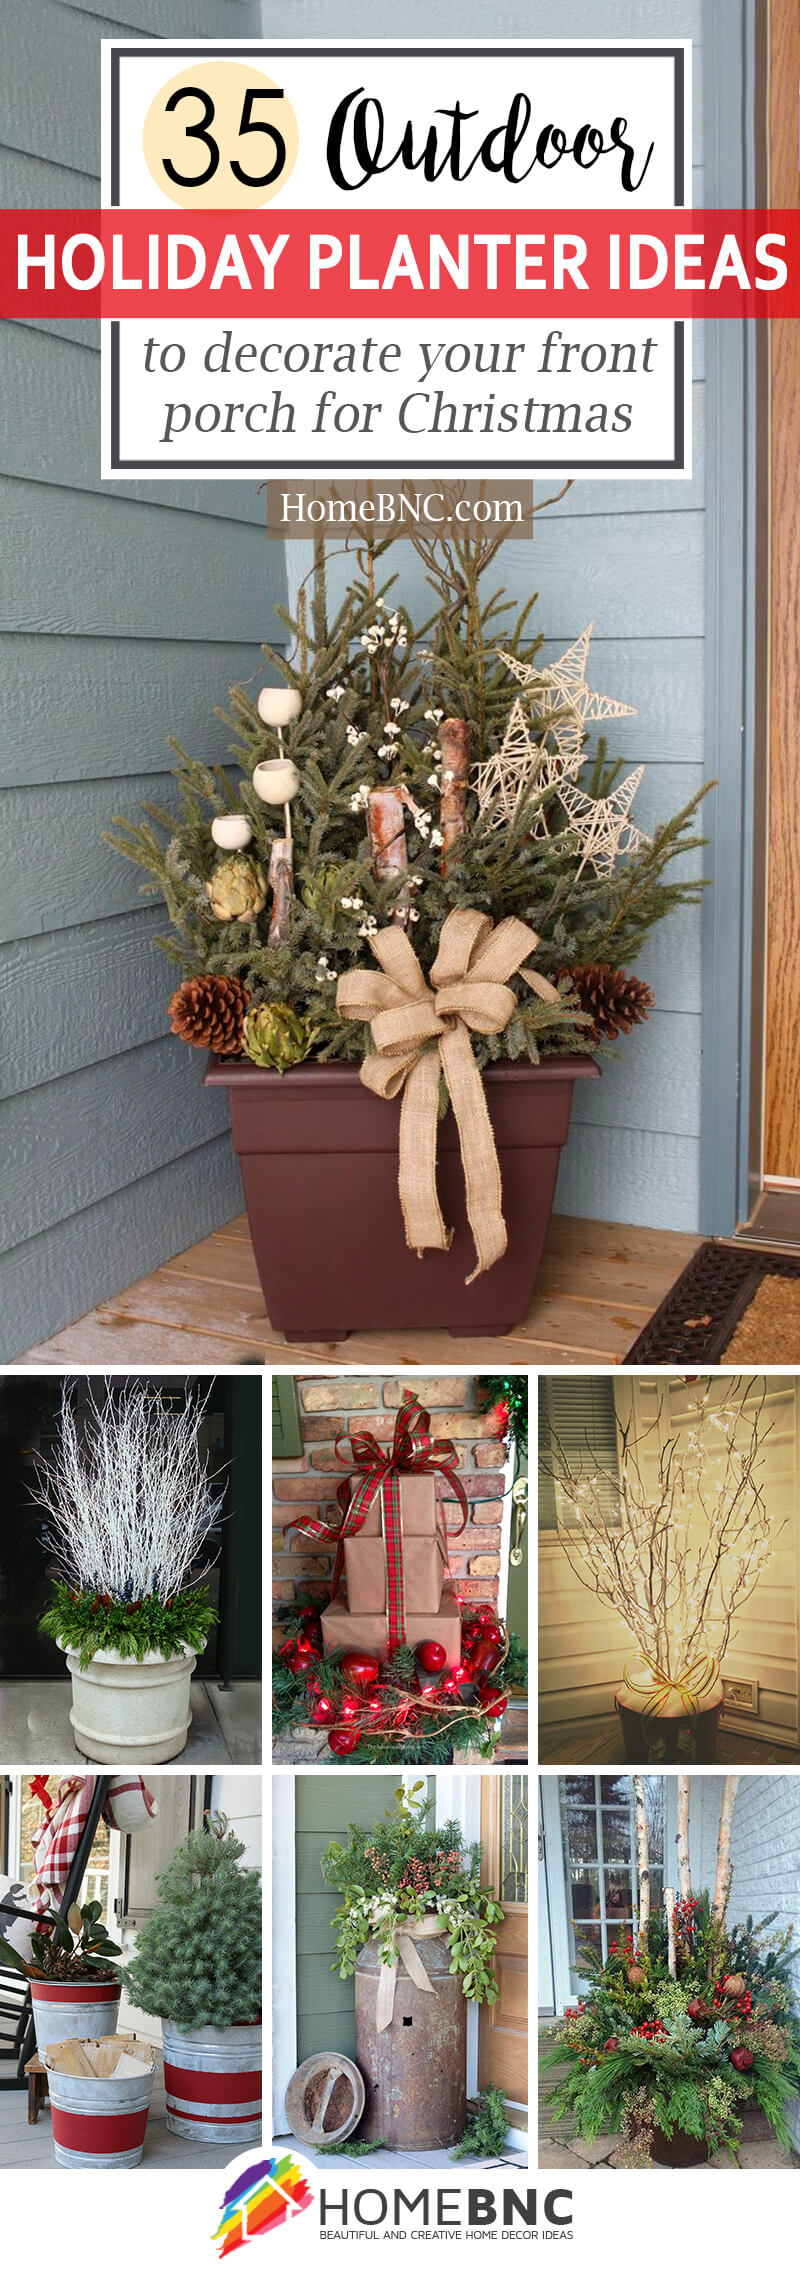 35 festive ways to decorate your front porch with these outdoor holiday planter ideas